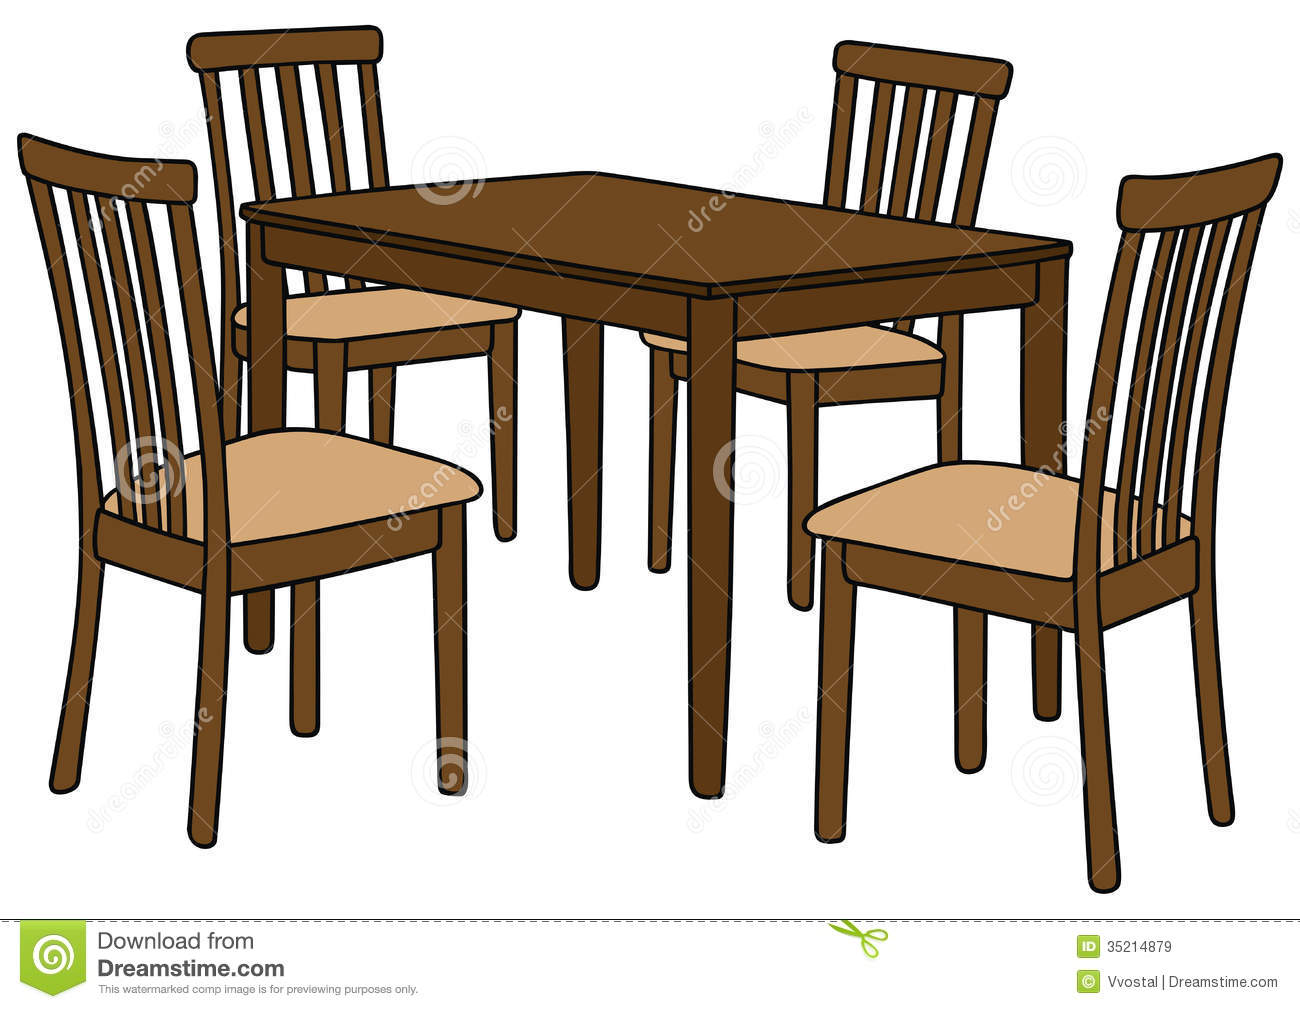 Restaurant tables and chairs clipart -